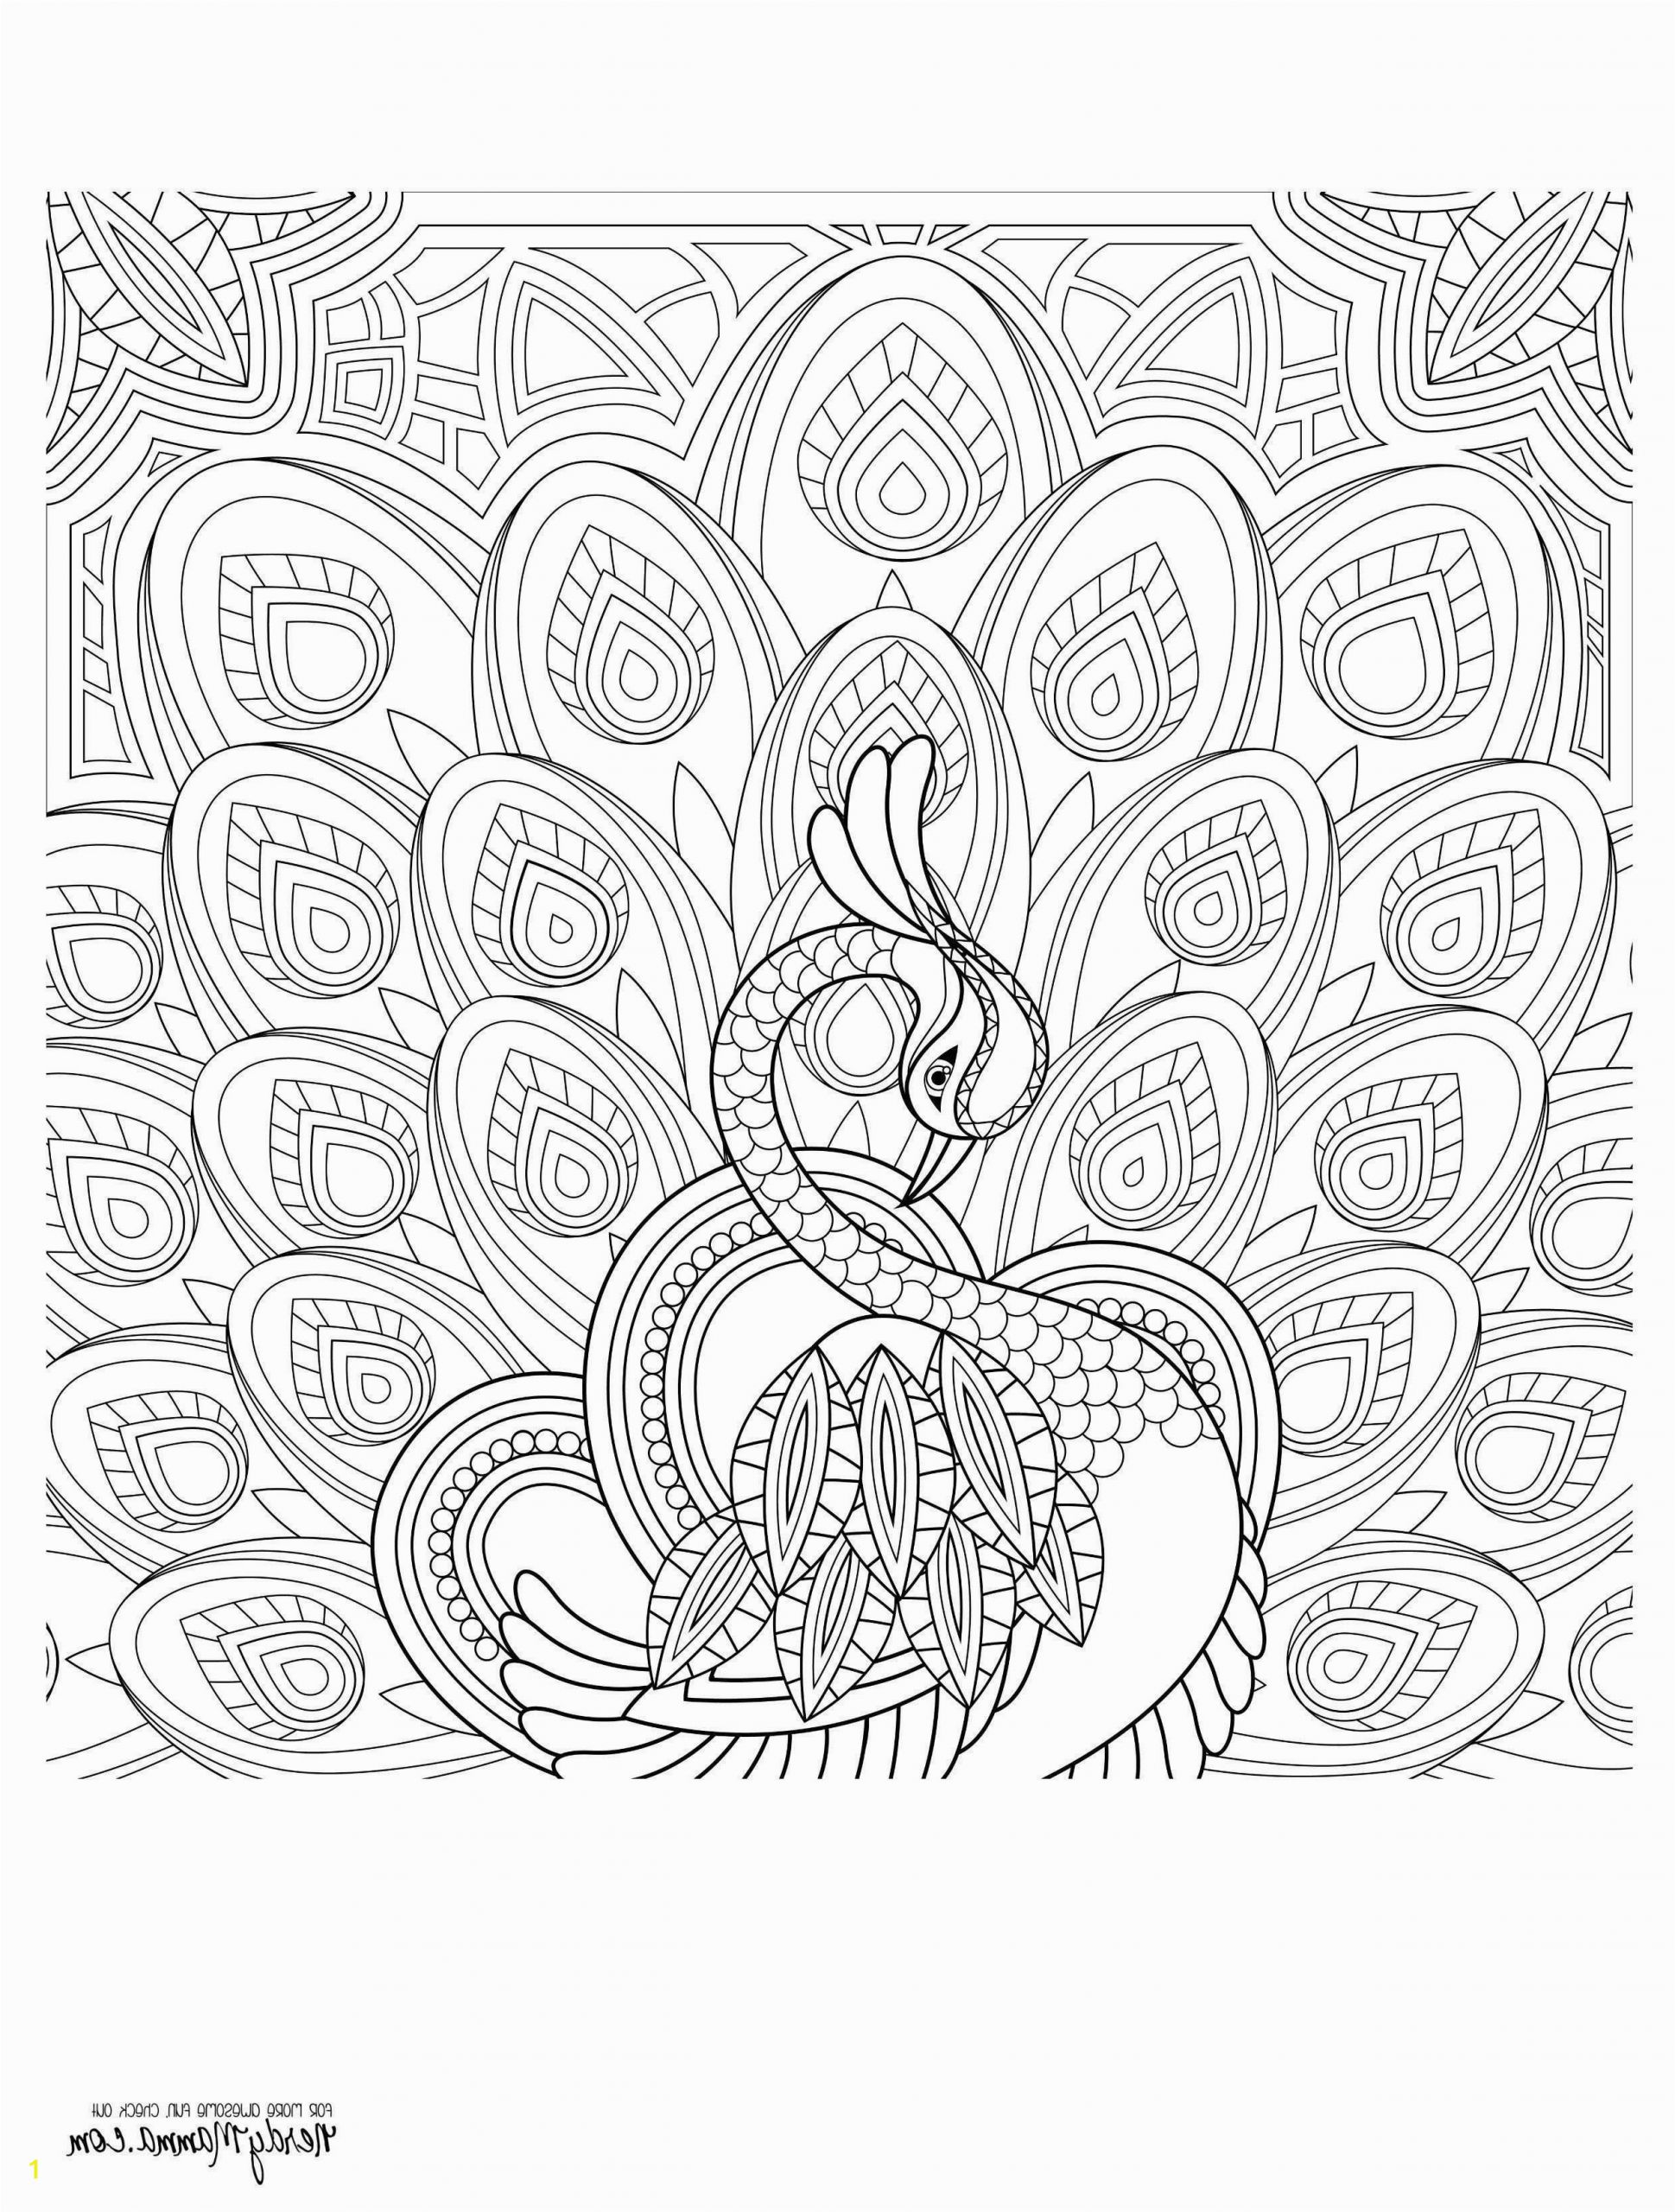 magical dawn coloring book beautiful photos coloring for adults inspirational color pages for adults free free of magical dawn coloring book